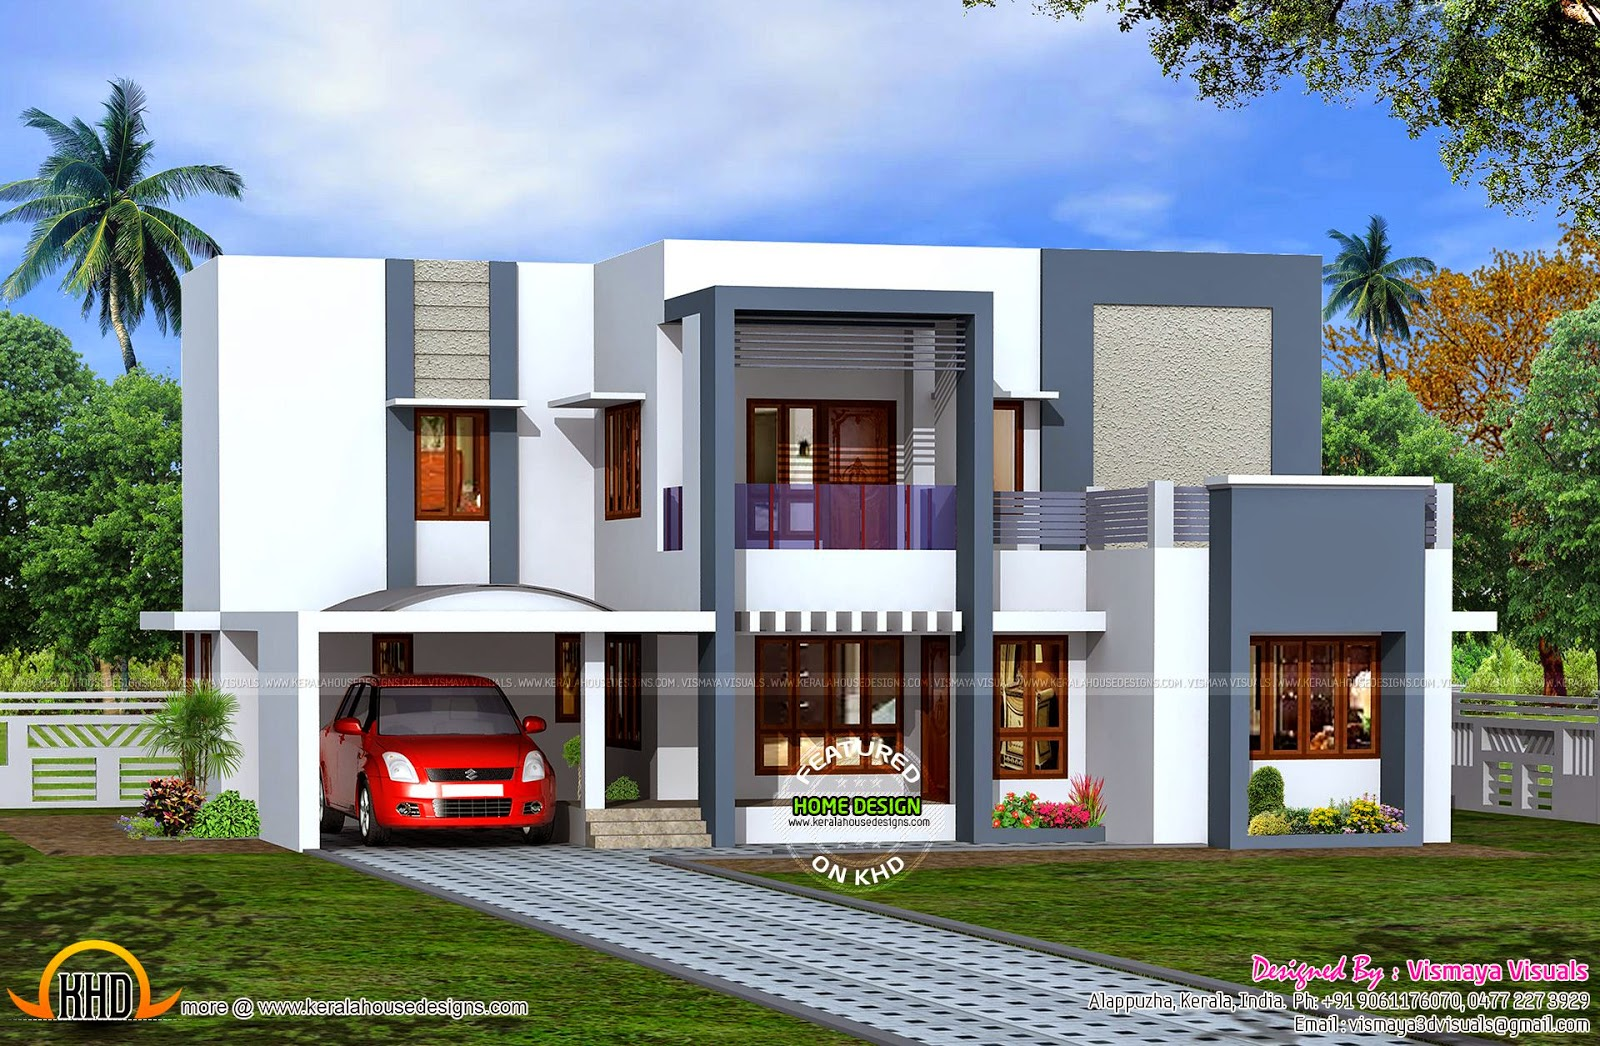 Absolute flat roof house kerala home design and floor plans for Kerala home design flat roof elevation